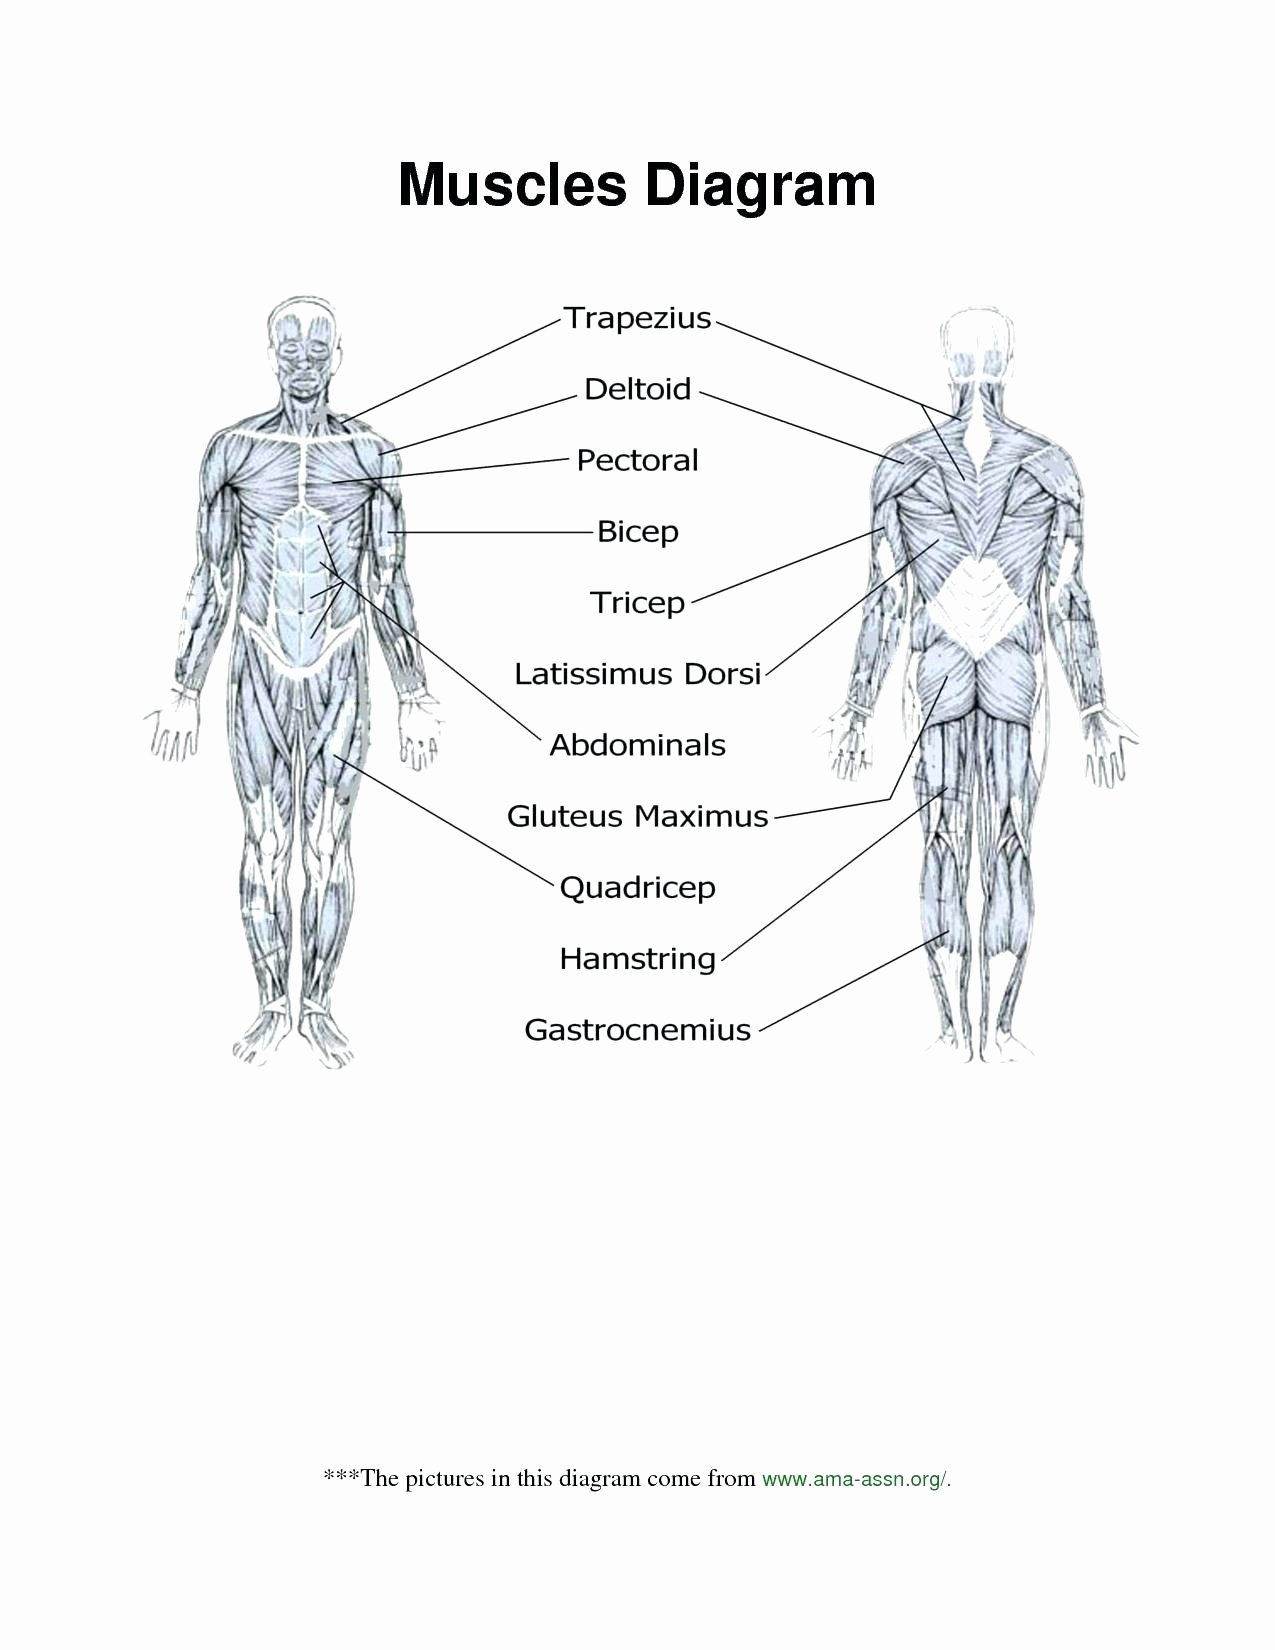 The Skeletal System Worksheet Beautiful Muscular System Diagram Worksheet Answers